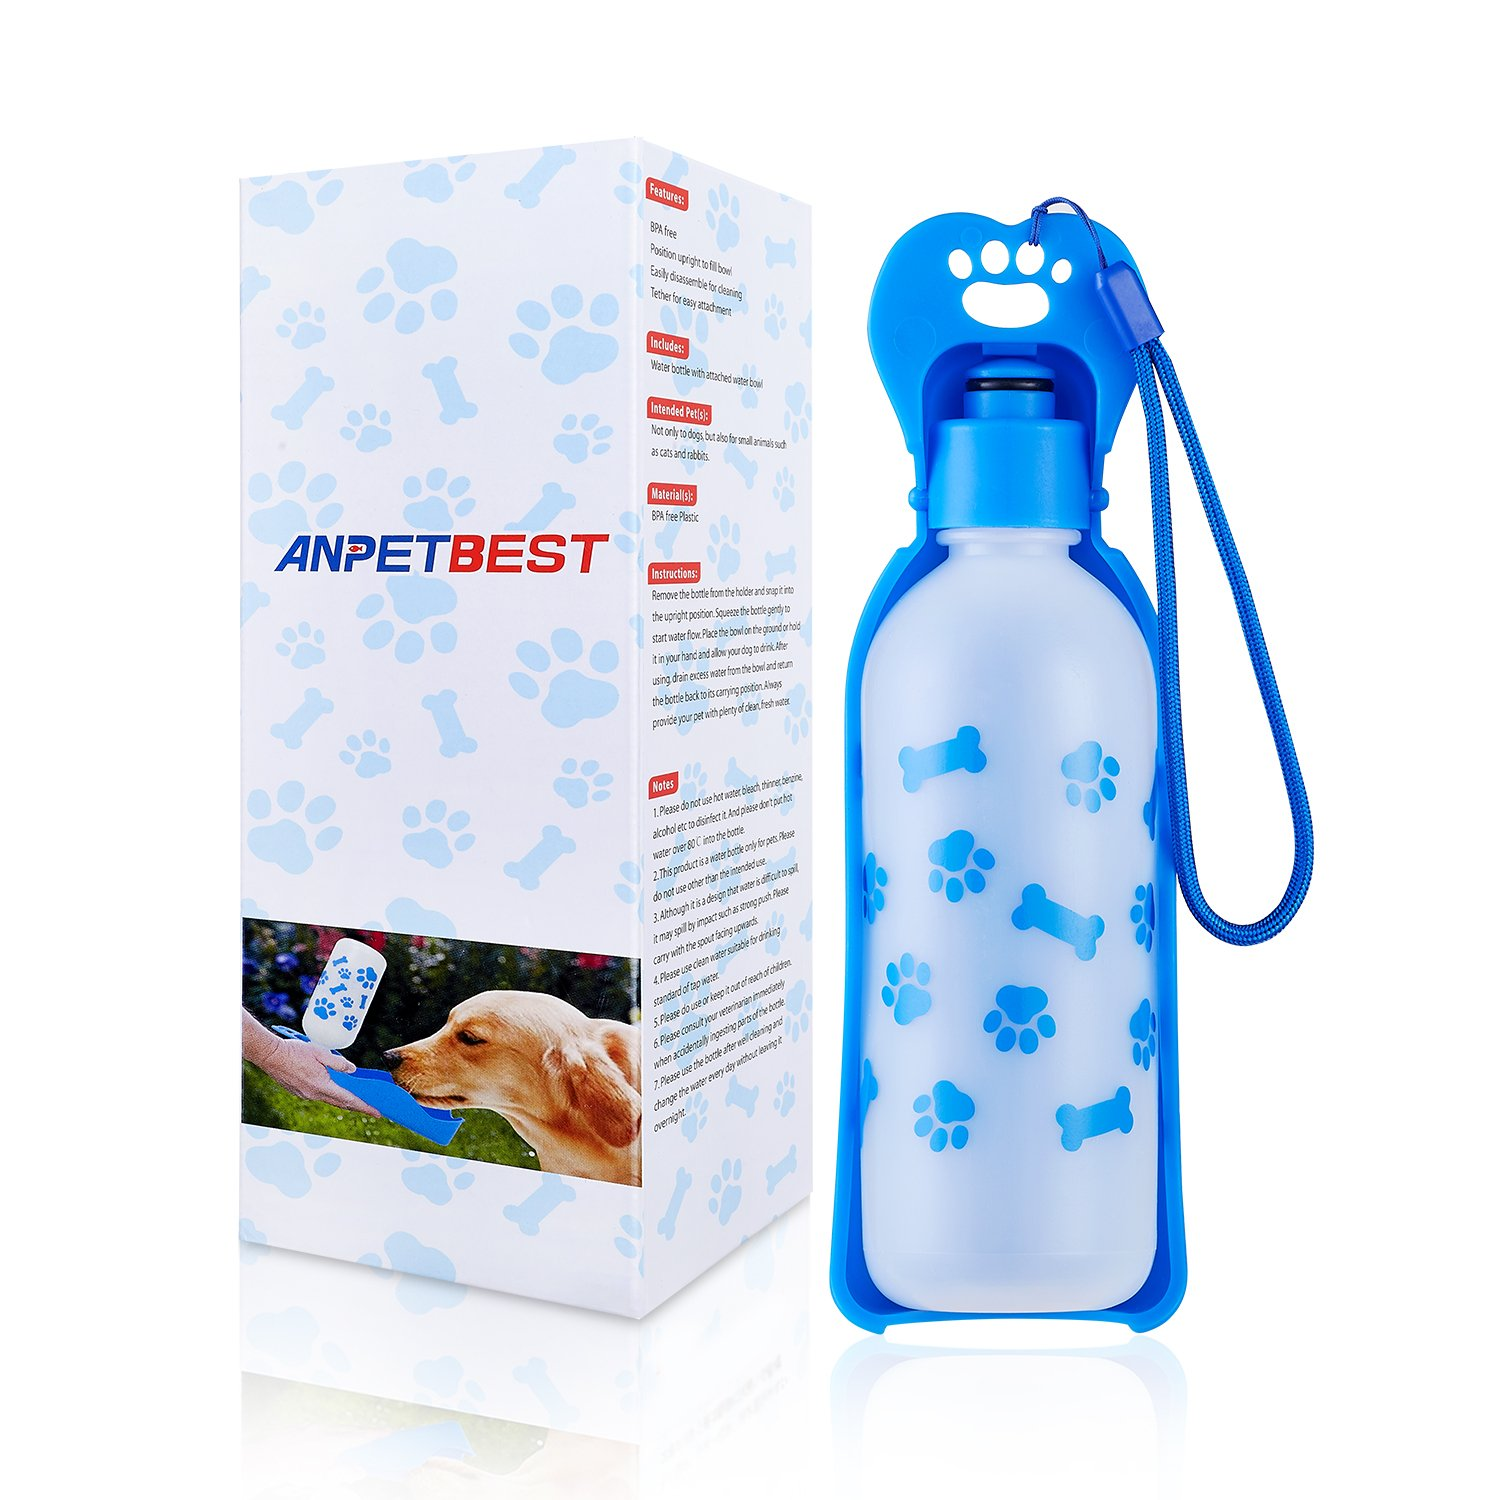 ANPETBEST Travel Water Bottle 325ML/11oz Water Dispenser Portable Mug for Dogs,Cats and Other Small Animals by ANPETBEST (Image #9)